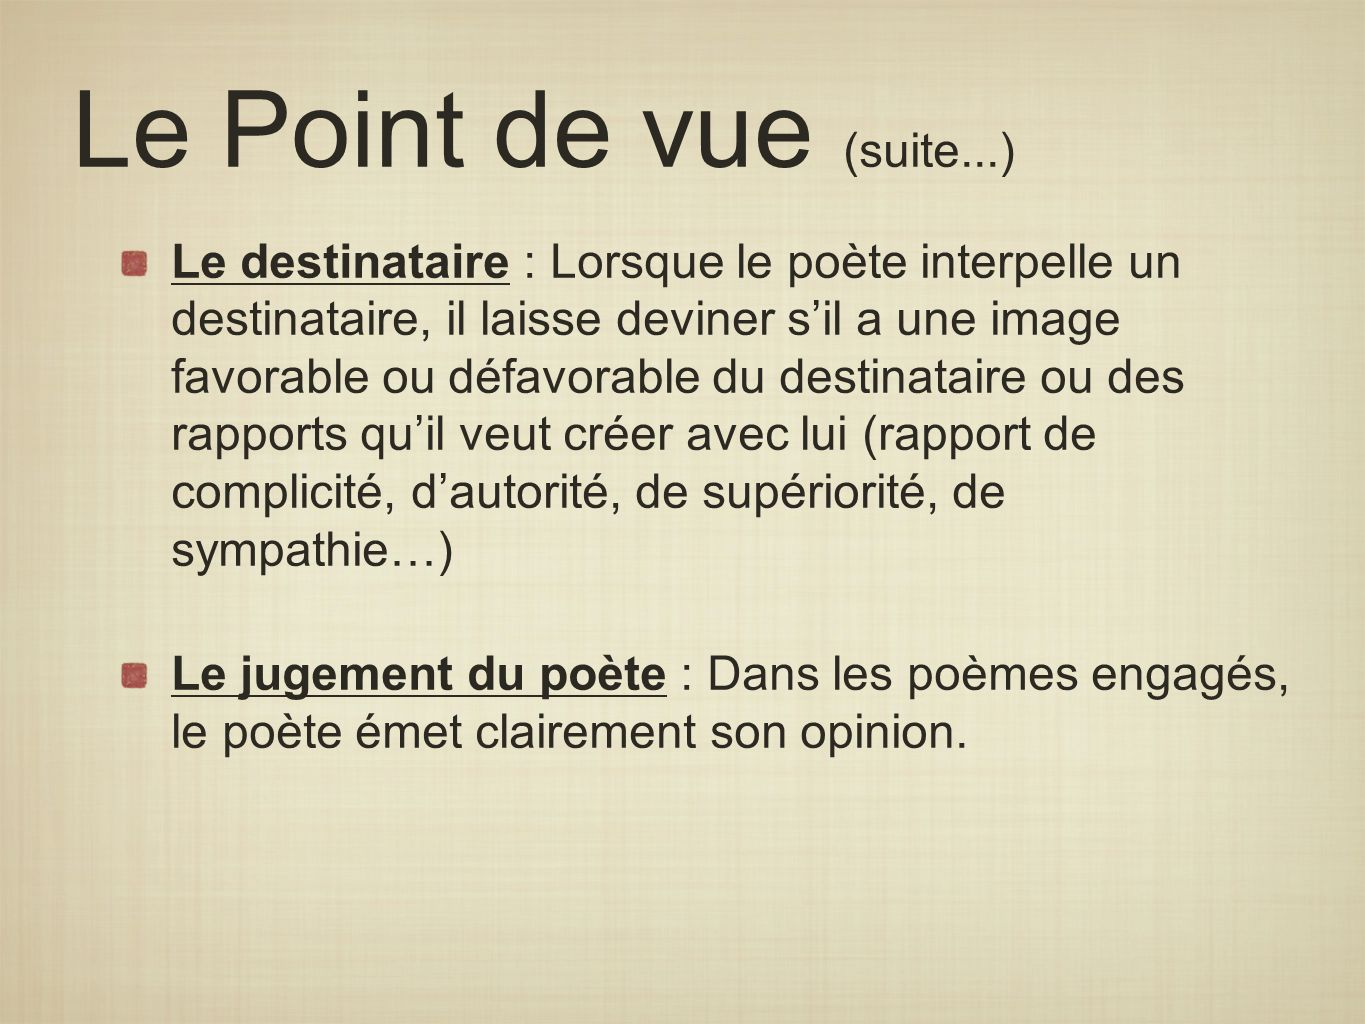 Le Point de vue (suite...)